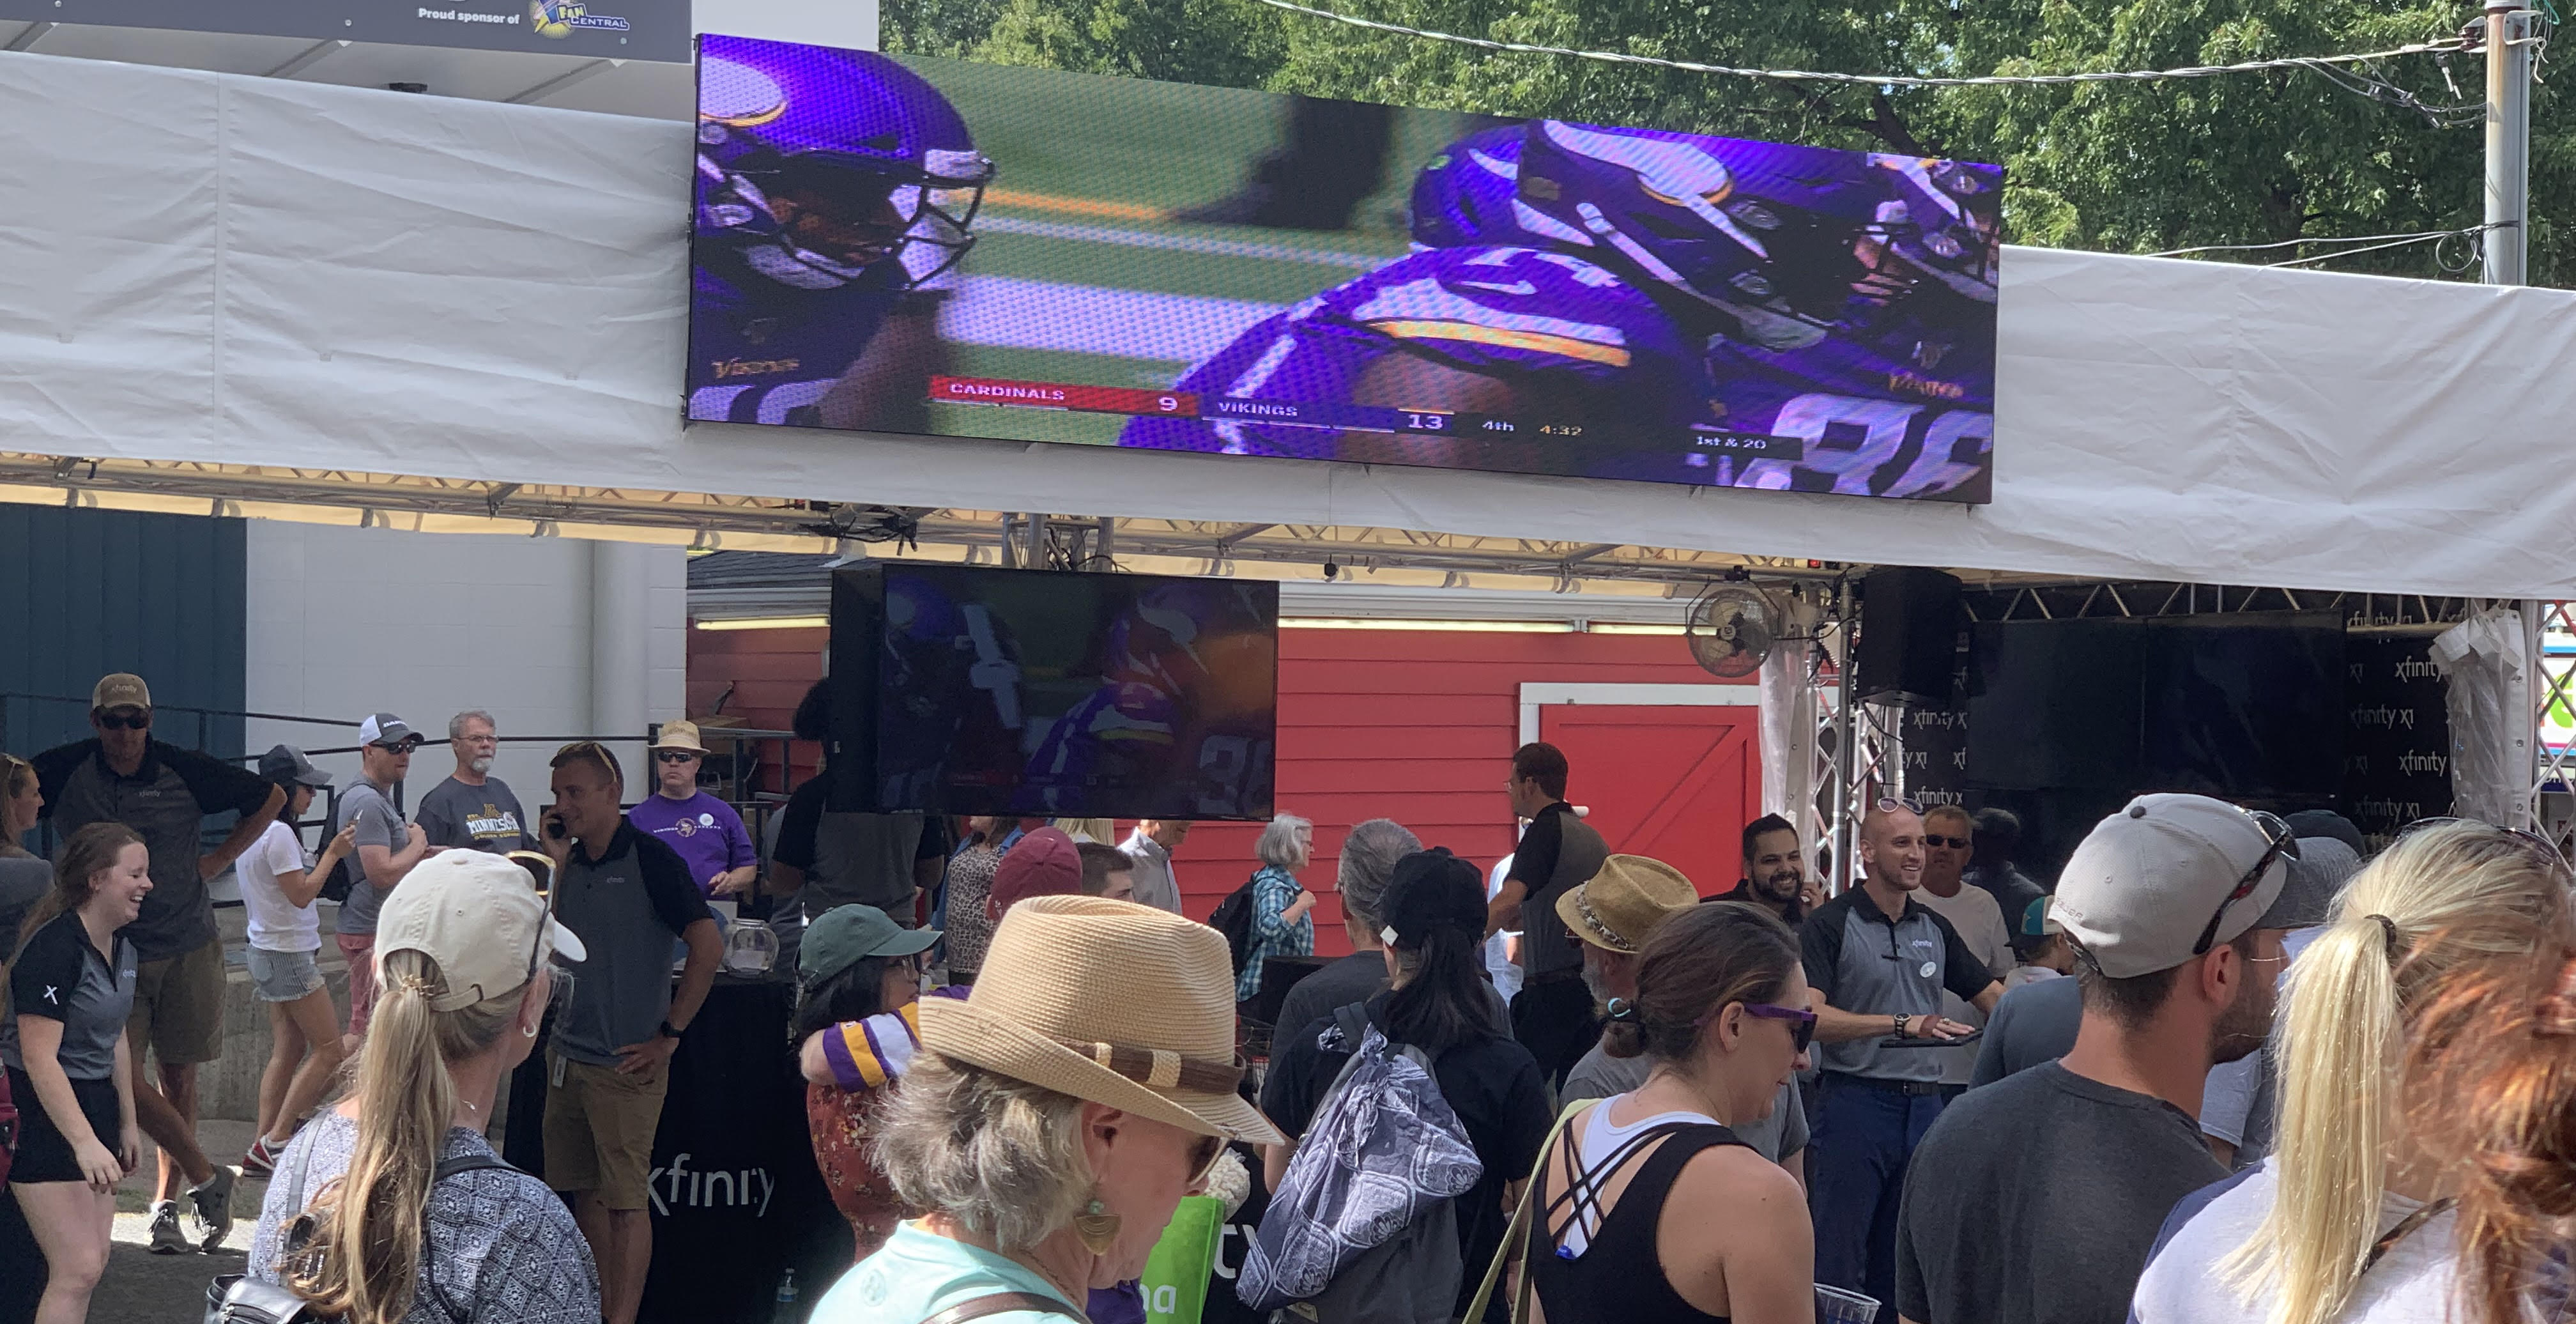 led jumbotron big screen tv rental for outoor events at mn state fair